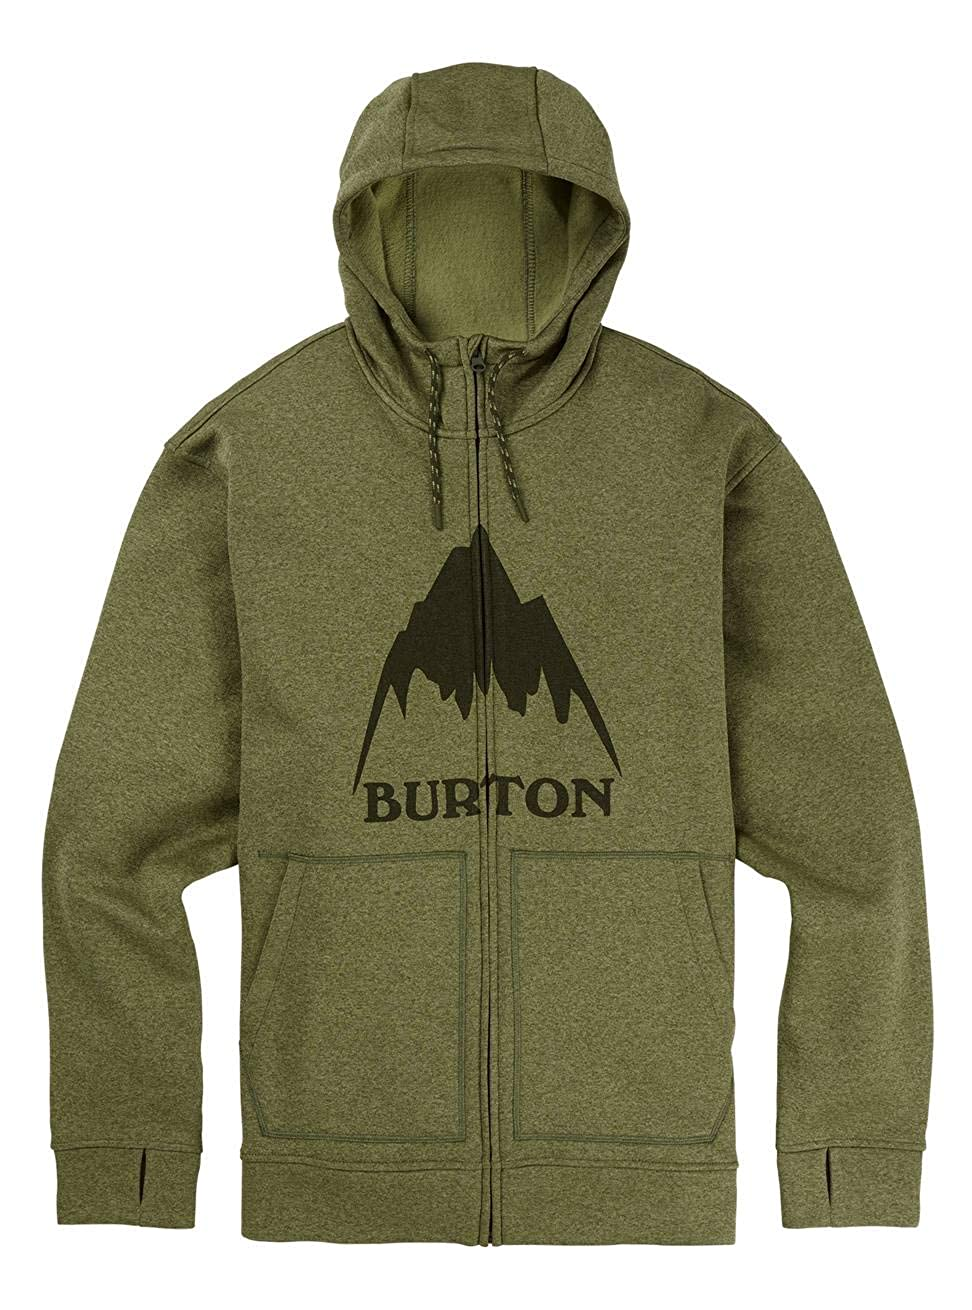 TALLA M. Burton Oak Full Zip Hoodie, Hombre, 16224106301, Clover Heather, Medium